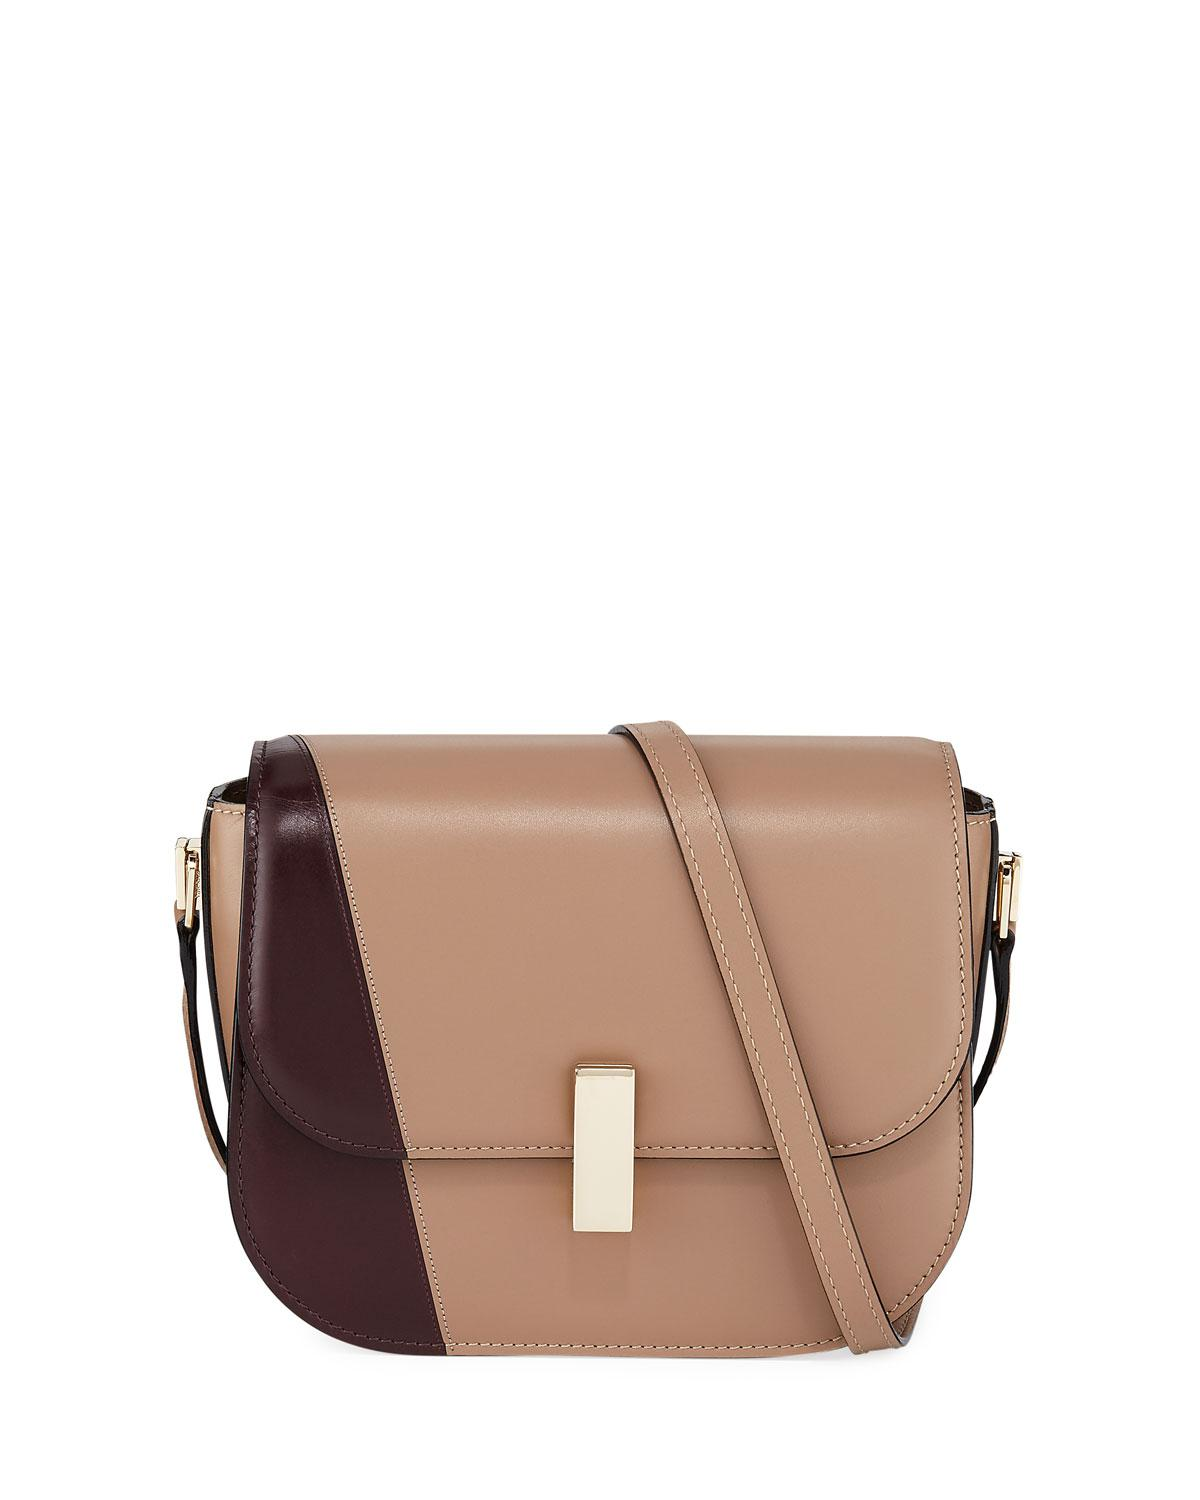 9f7db0a433 Lyst - Valextra Iside Colorblock Leather Crossbody Bag in Brown